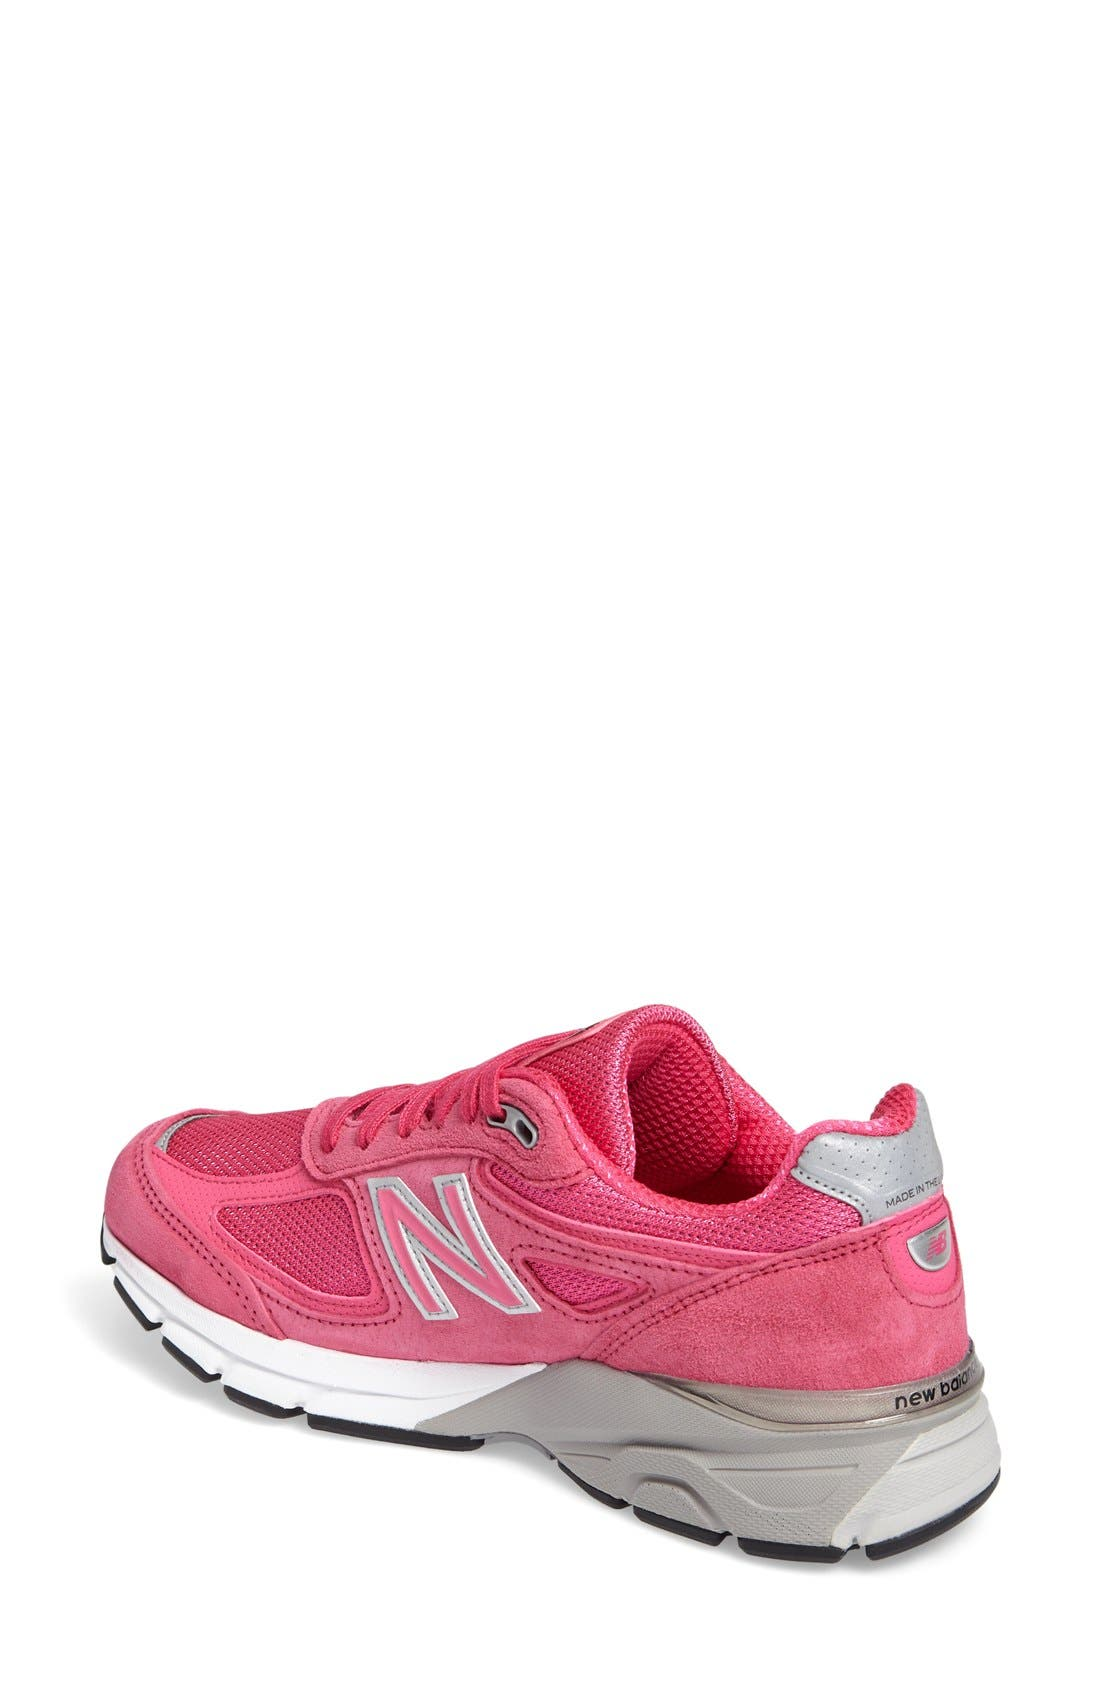 Alternate Image 2  - New Balance '990 Premium' Running Shoe (Women)